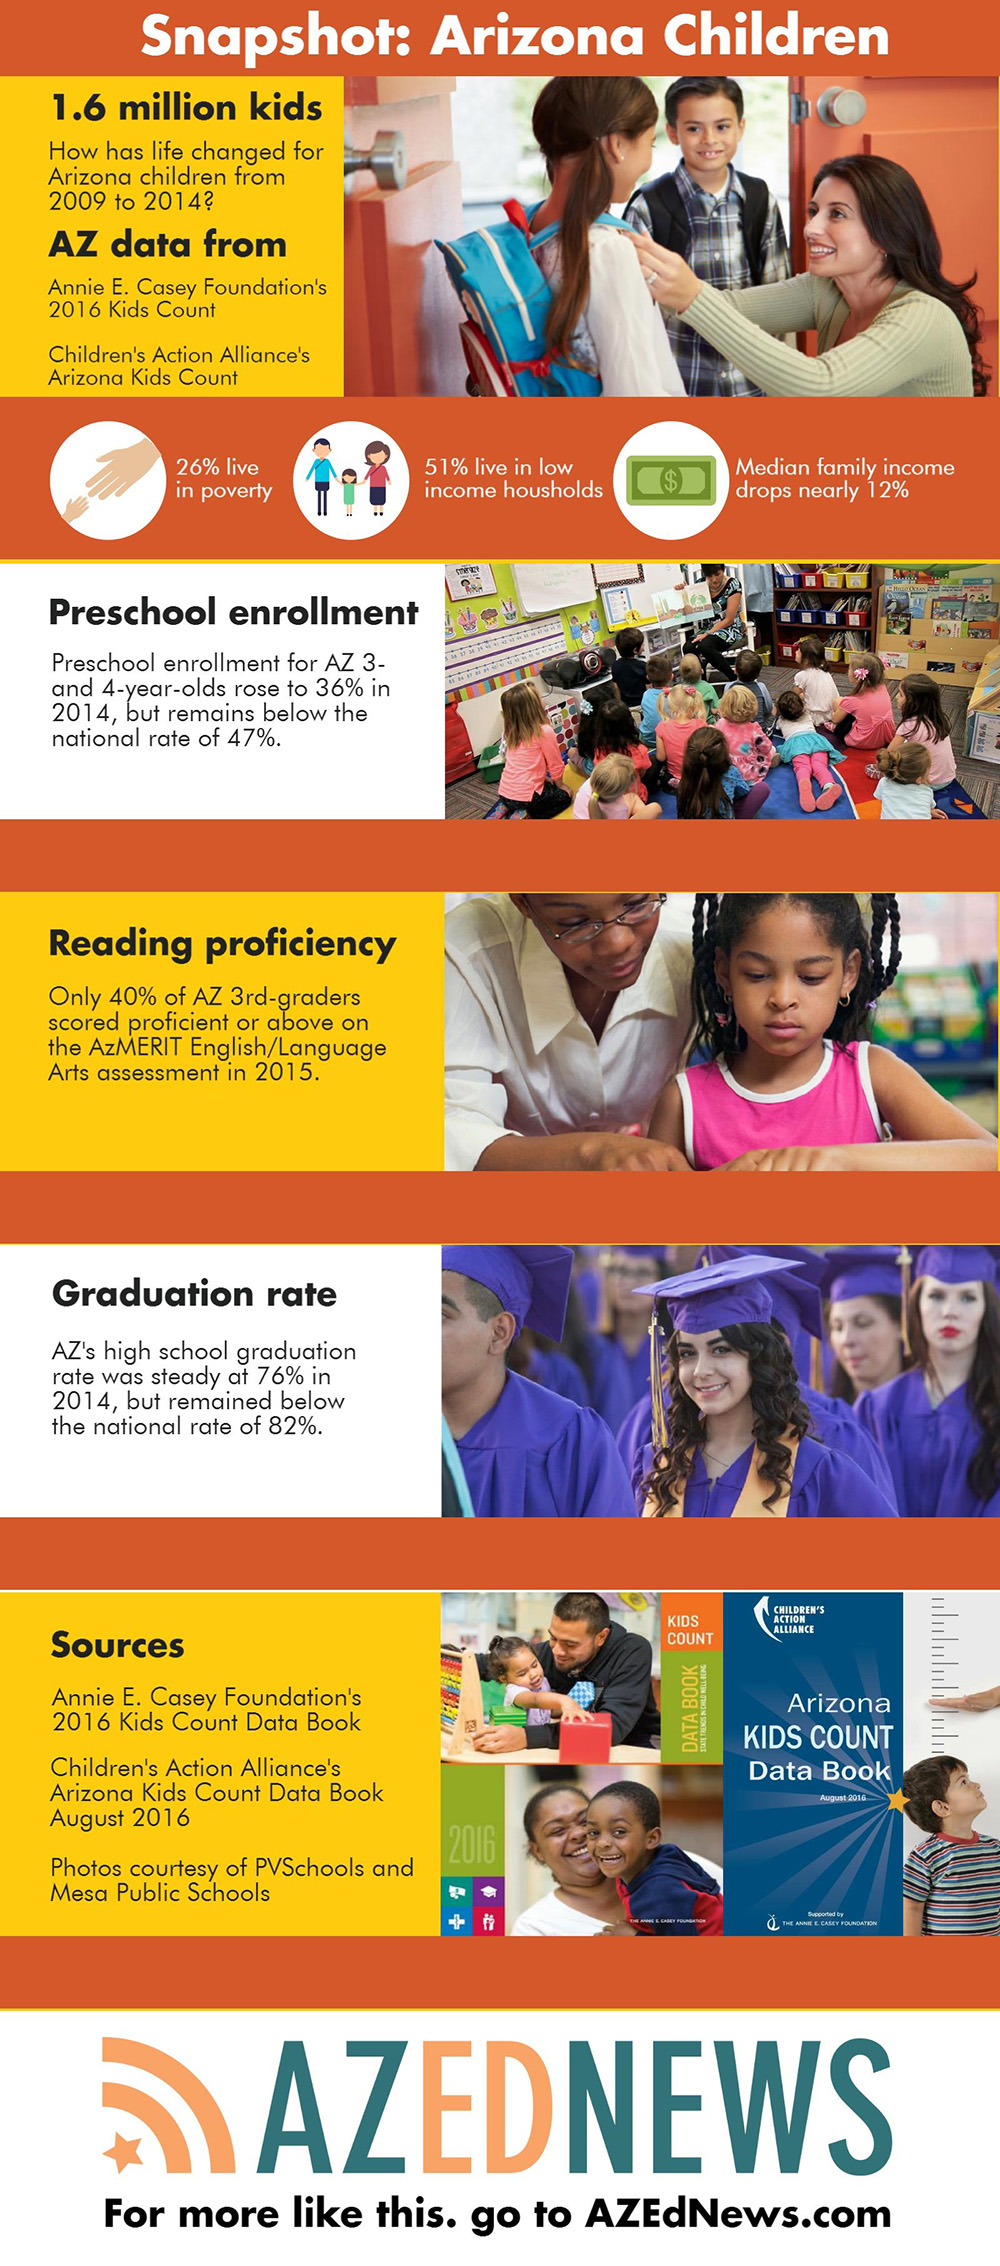 Economy recovers, but poverty gap widens for Arizona's children AZEdNews-AZChildrenSnapshot2016